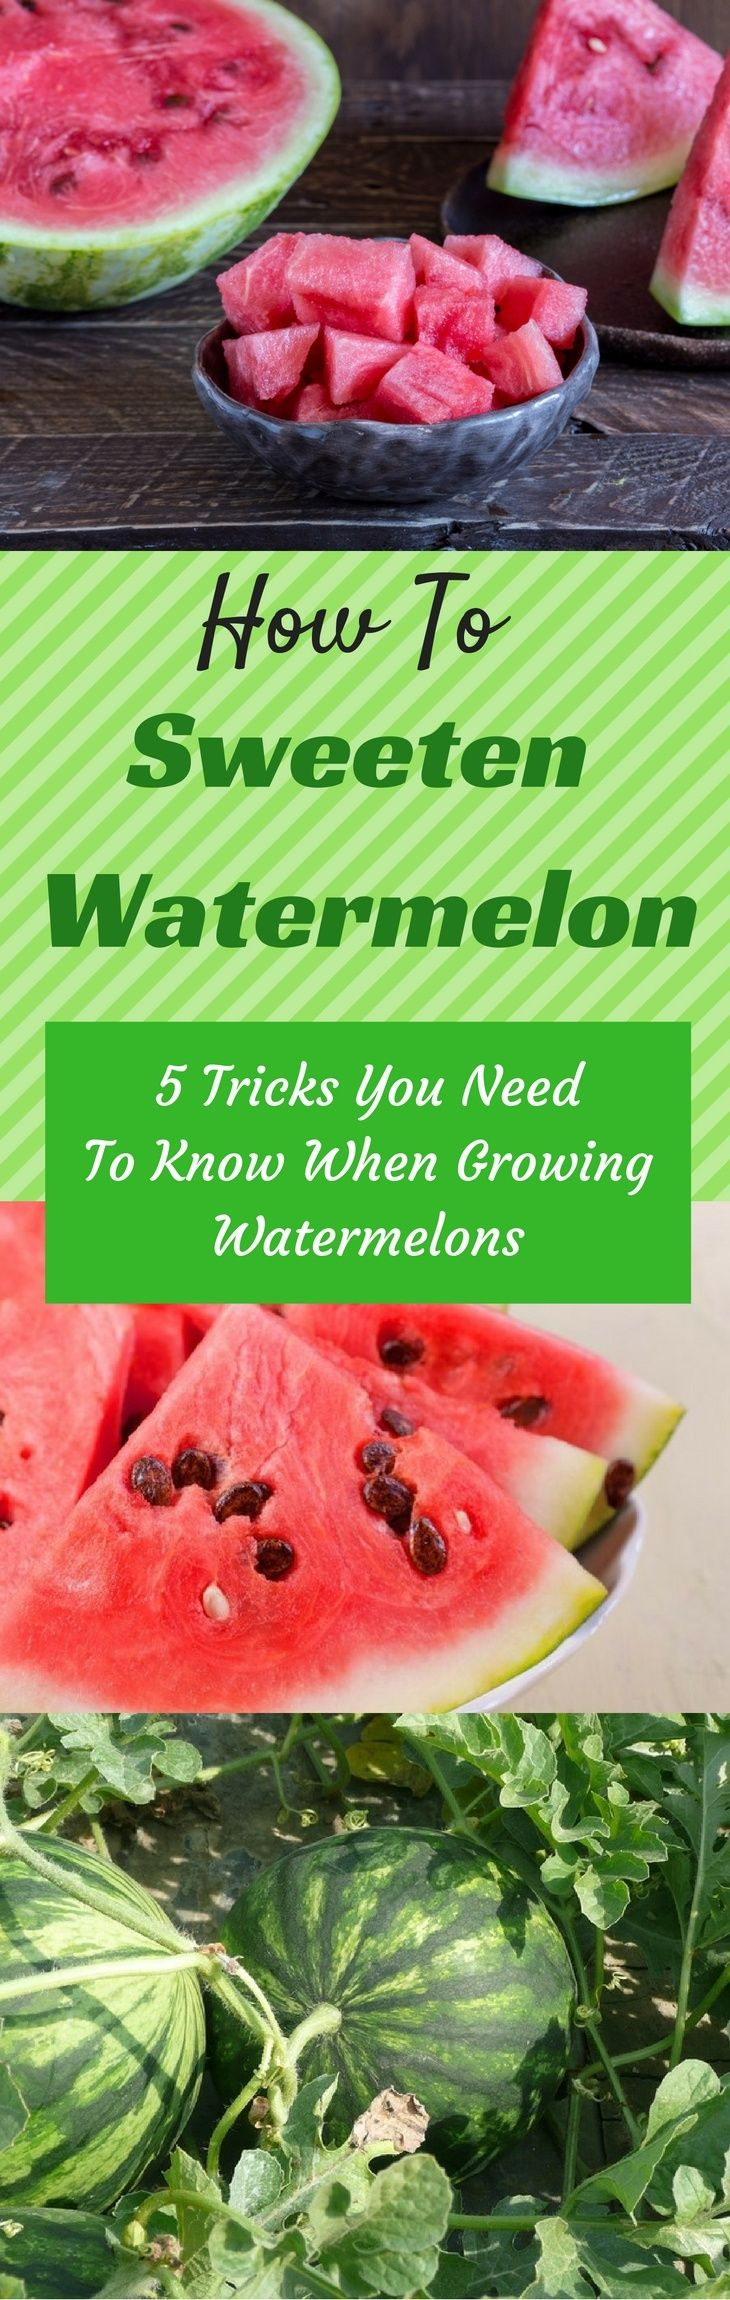 Beat the heat with a yummy watermelon. Oops! Don't just bite it, but learn the tricks in growing and how to sweeten watermelon! Source: https://gardenambition.com/how-to-sweeten-watermelon/